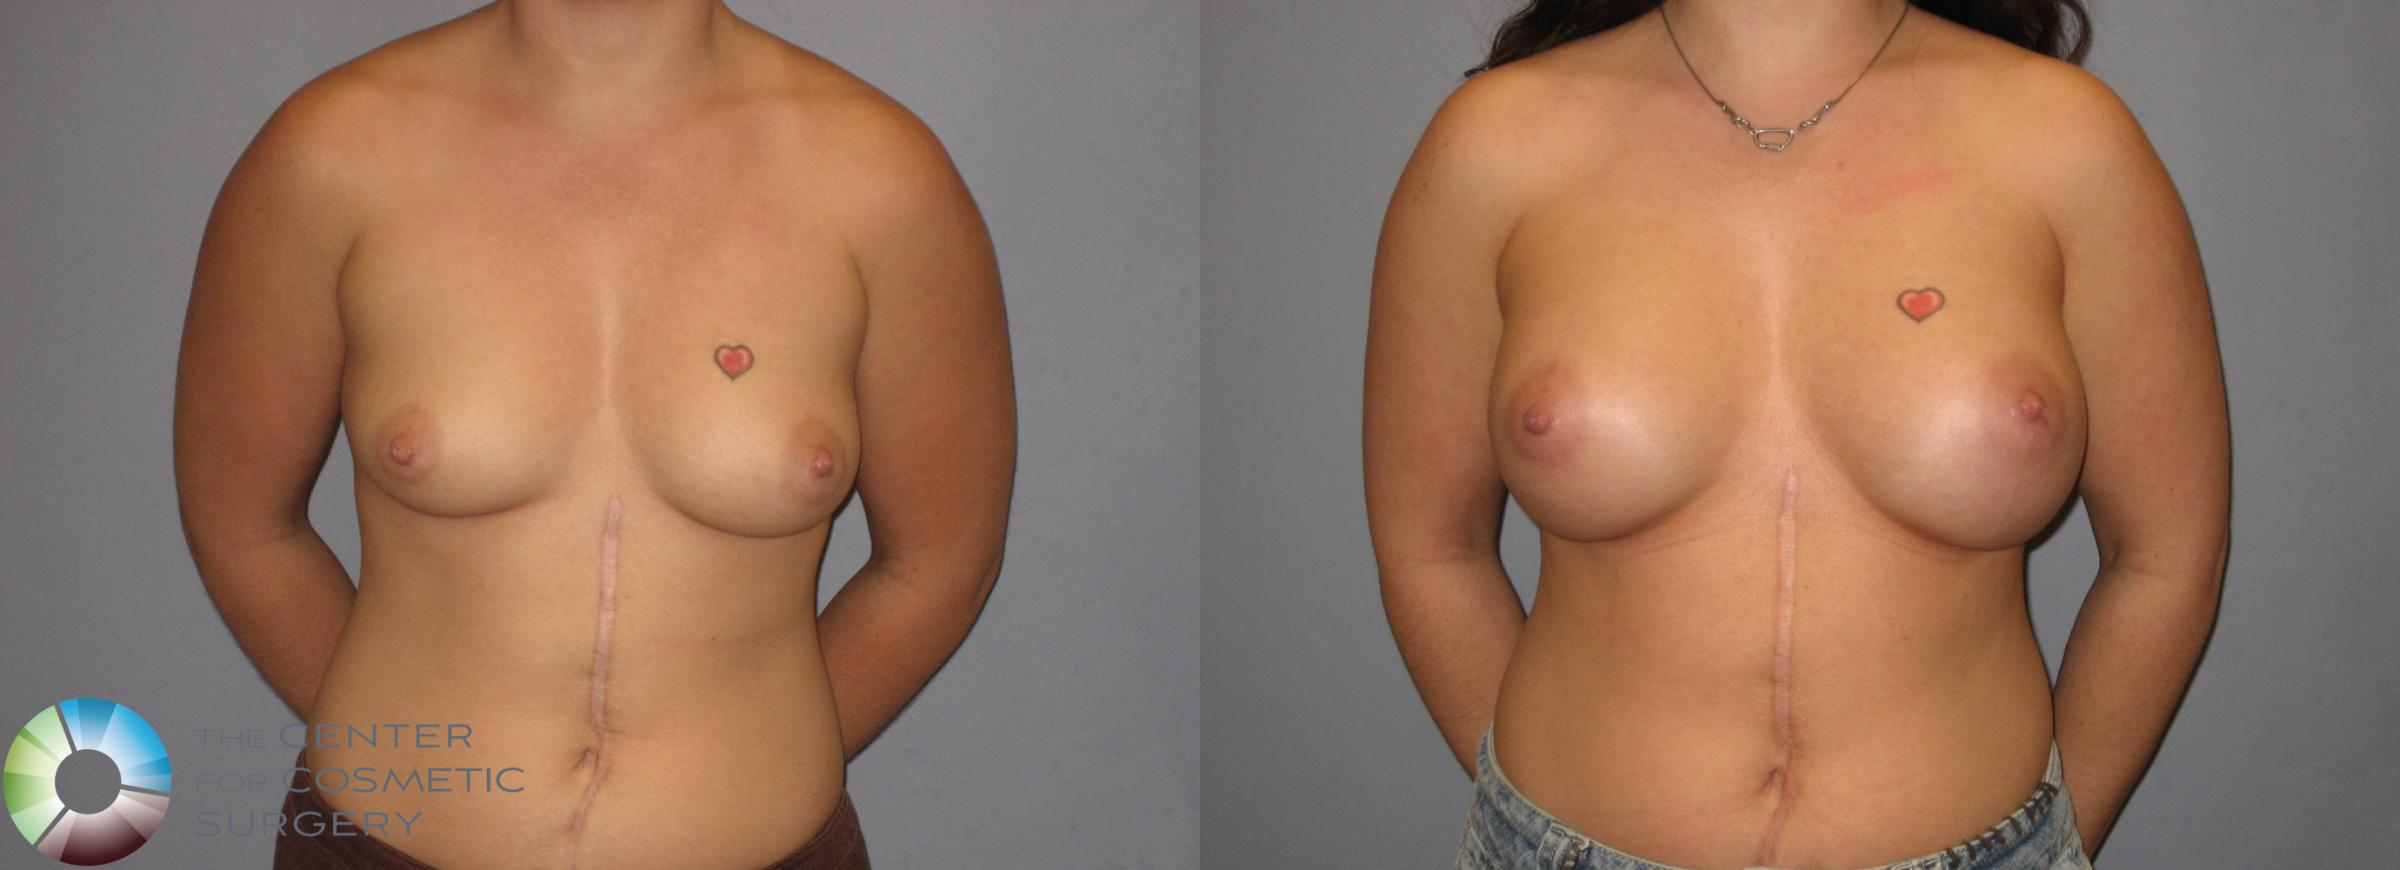 Breast Augmentation Case 183 Before & After View #3 | Golden, CO | The Center for Cosmetic Surgery